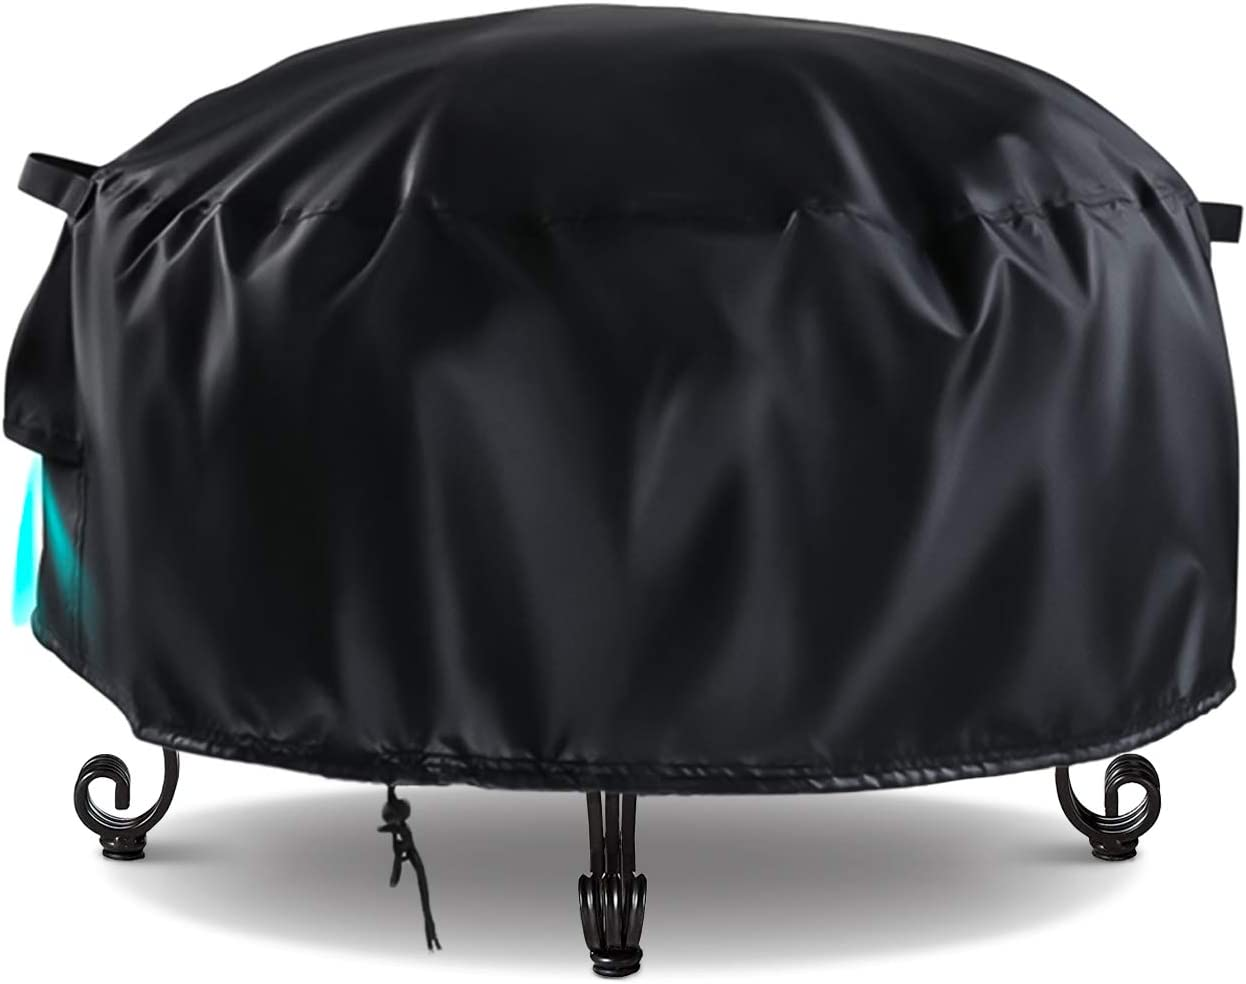 TwoPone Outdoor Fire Pit Cover Rare Round- Co Bowl Patio Bargain Inch 30